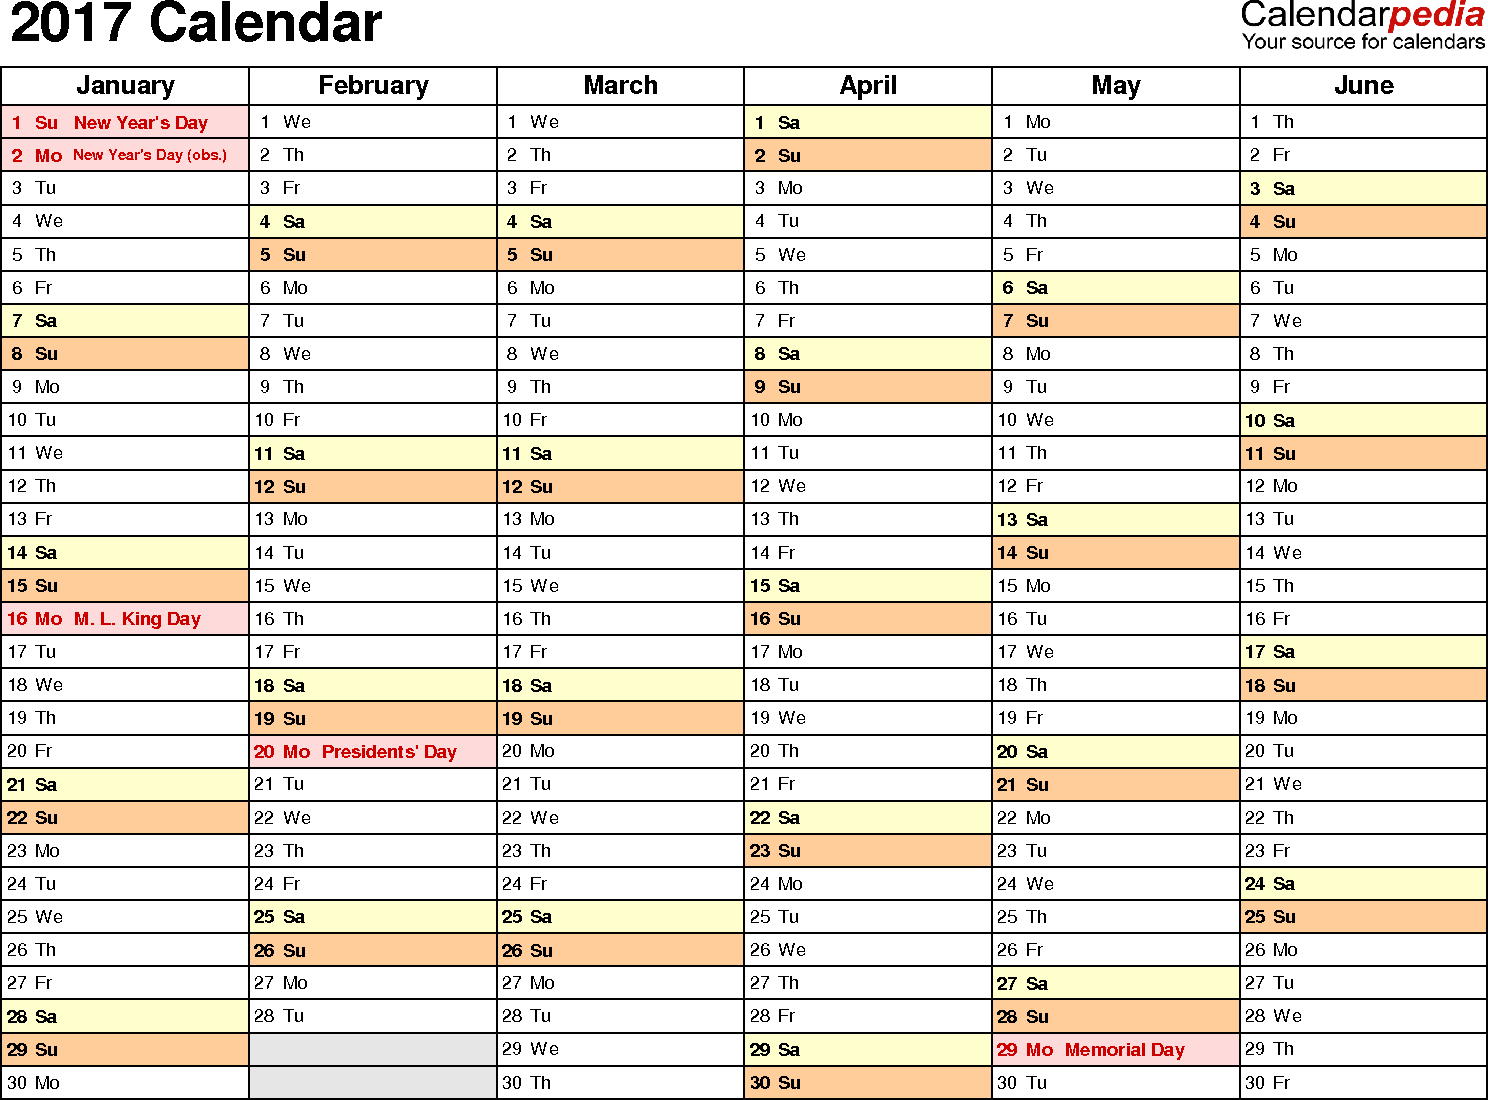 Ediblewildsus  Inspiring  Calendar  Download  Free Printable Excel Templates Xls With Heavenly Template   Calendar For Excel Months Horizontally  Pages Landscape Orientation With Alluring How To Make A Balance Sheet In Excel Also Excel Mortgage Payment Formula In Addition Remove Duplicate Entries In Excel And How To Insert Bullet In Excel As Well As Showing Formulas In Excel Additionally Excel Print Lines From Calendarpediacom With Ediblewildsus  Heavenly  Calendar  Download  Free Printable Excel Templates Xls With Alluring Template   Calendar For Excel Months Horizontally  Pages Landscape Orientation And Inspiring How To Make A Balance Sheet In Excel Also Excel Mortgage Payment Formula In Addition Remove Duplicate Entries In Excel From Calendarpediacom